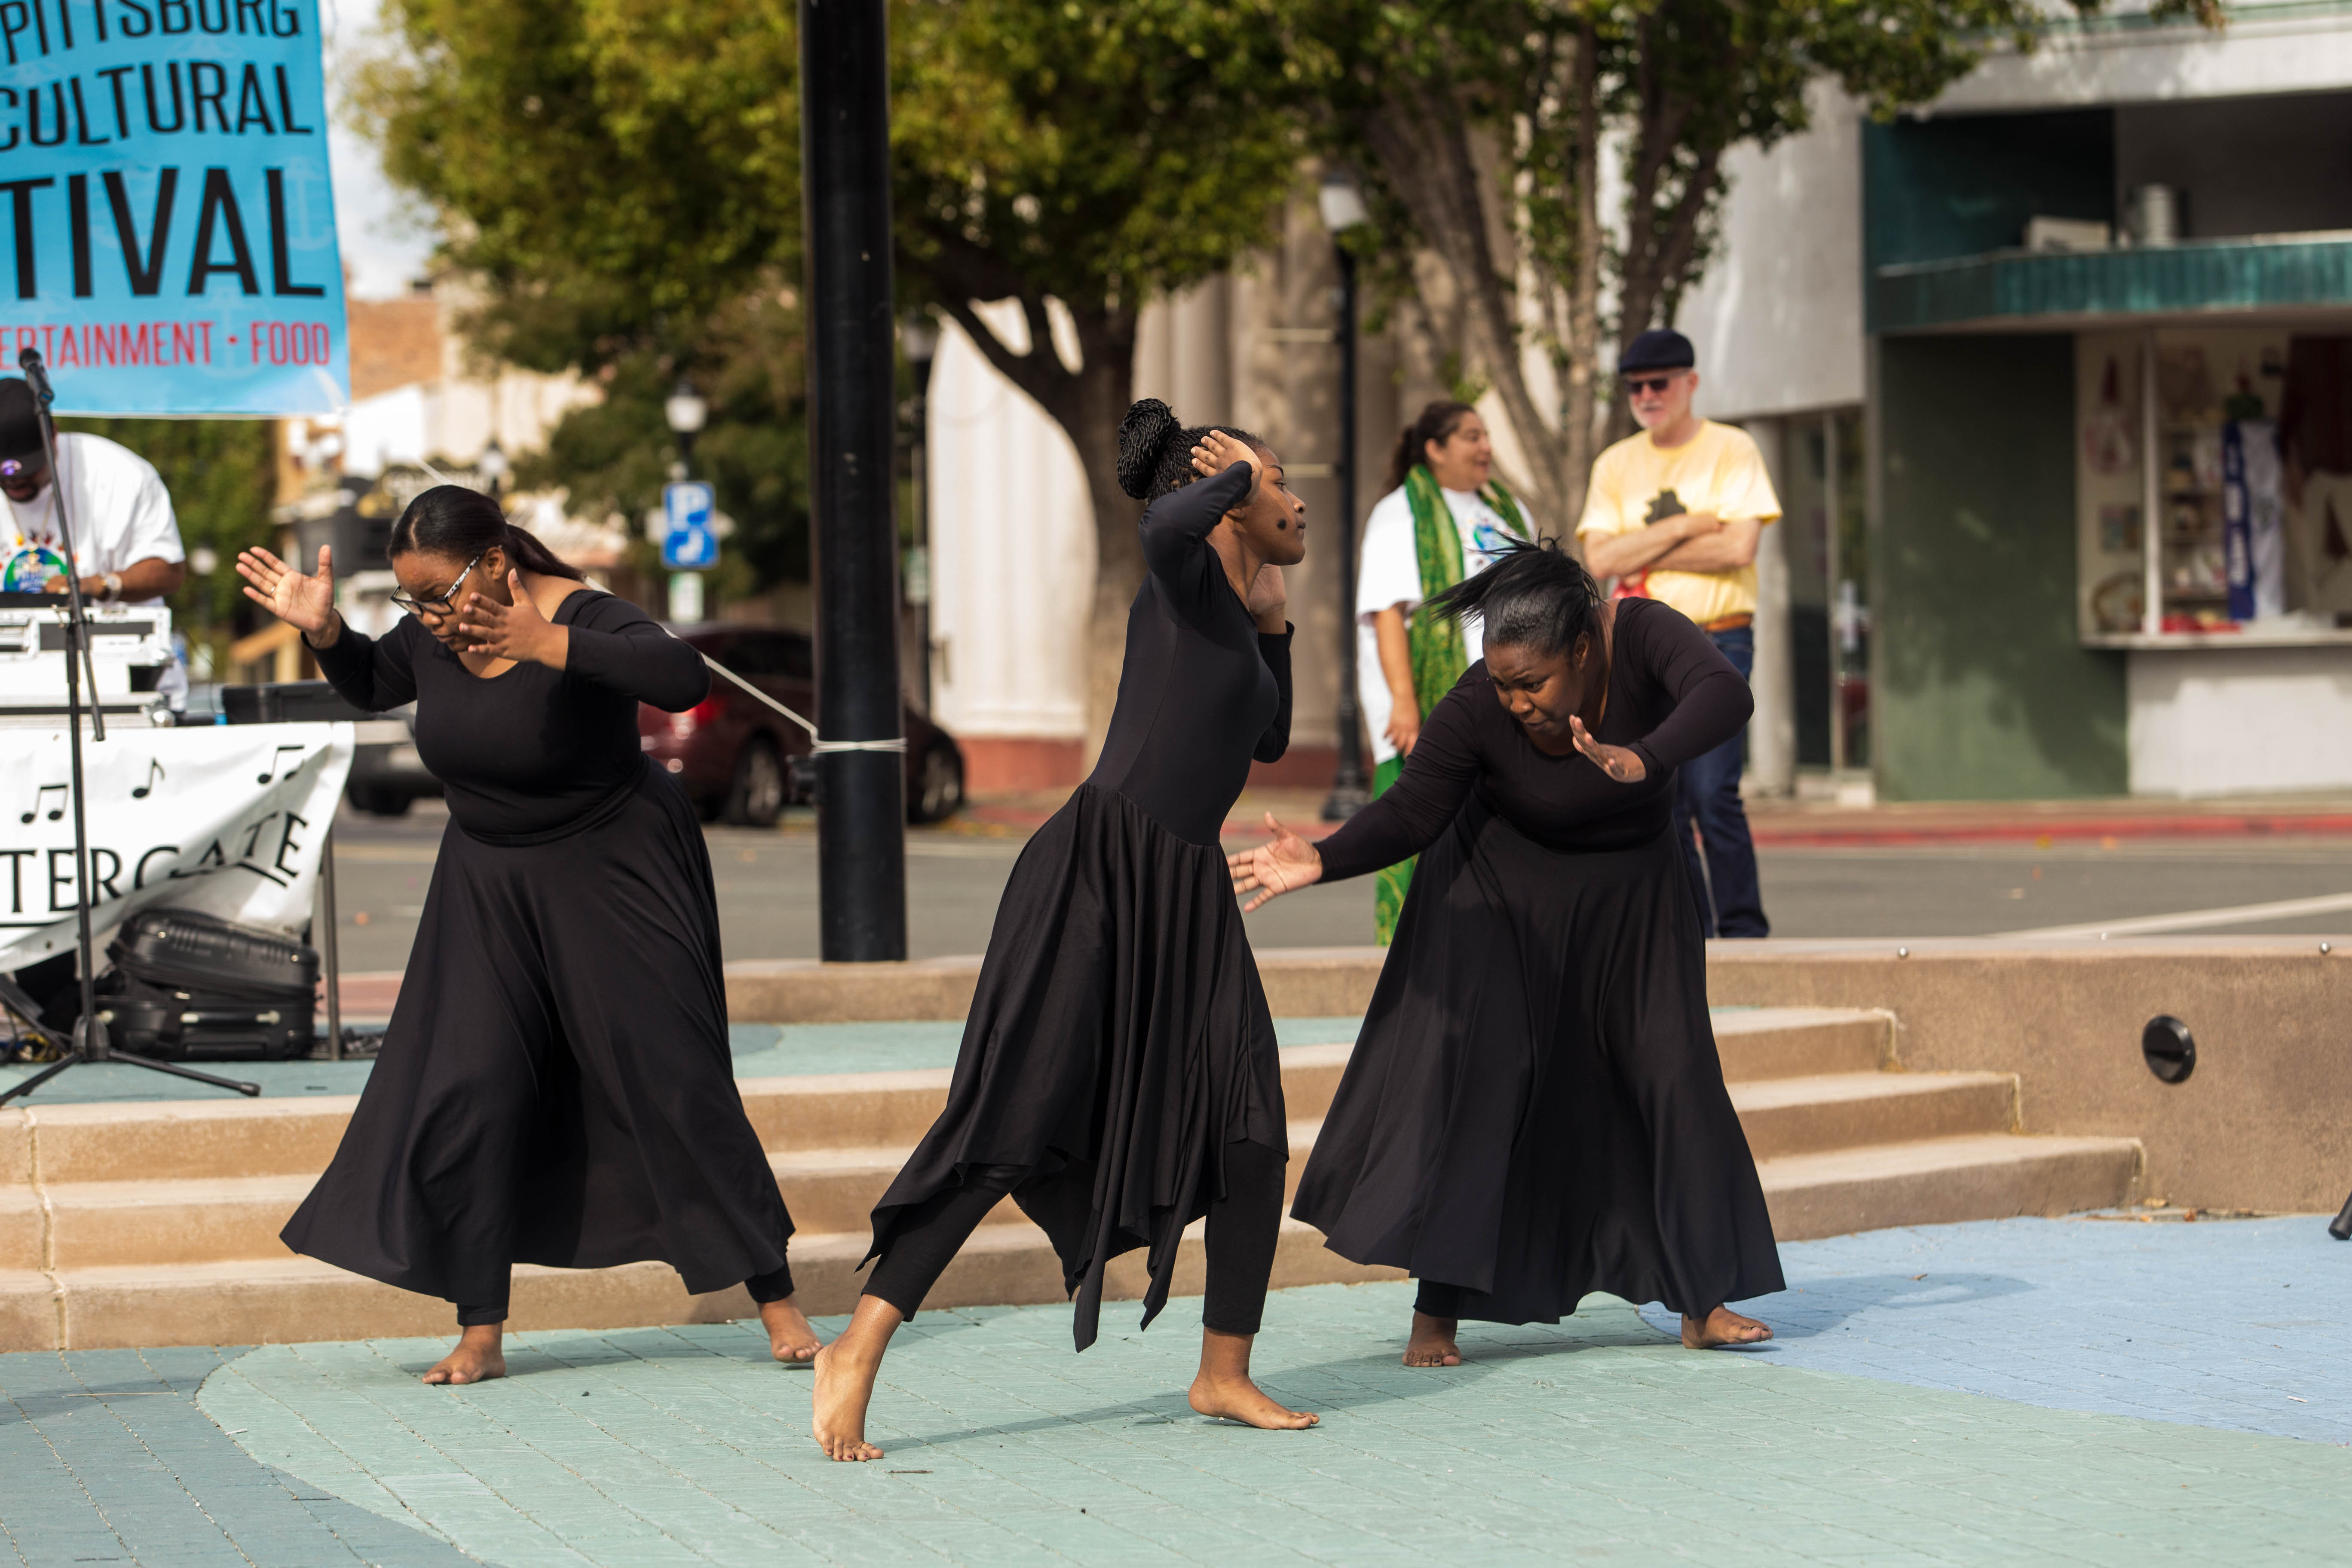 CITY_PITTSBURG_MULTICULTURAL_OCTOBER_2016 (739)